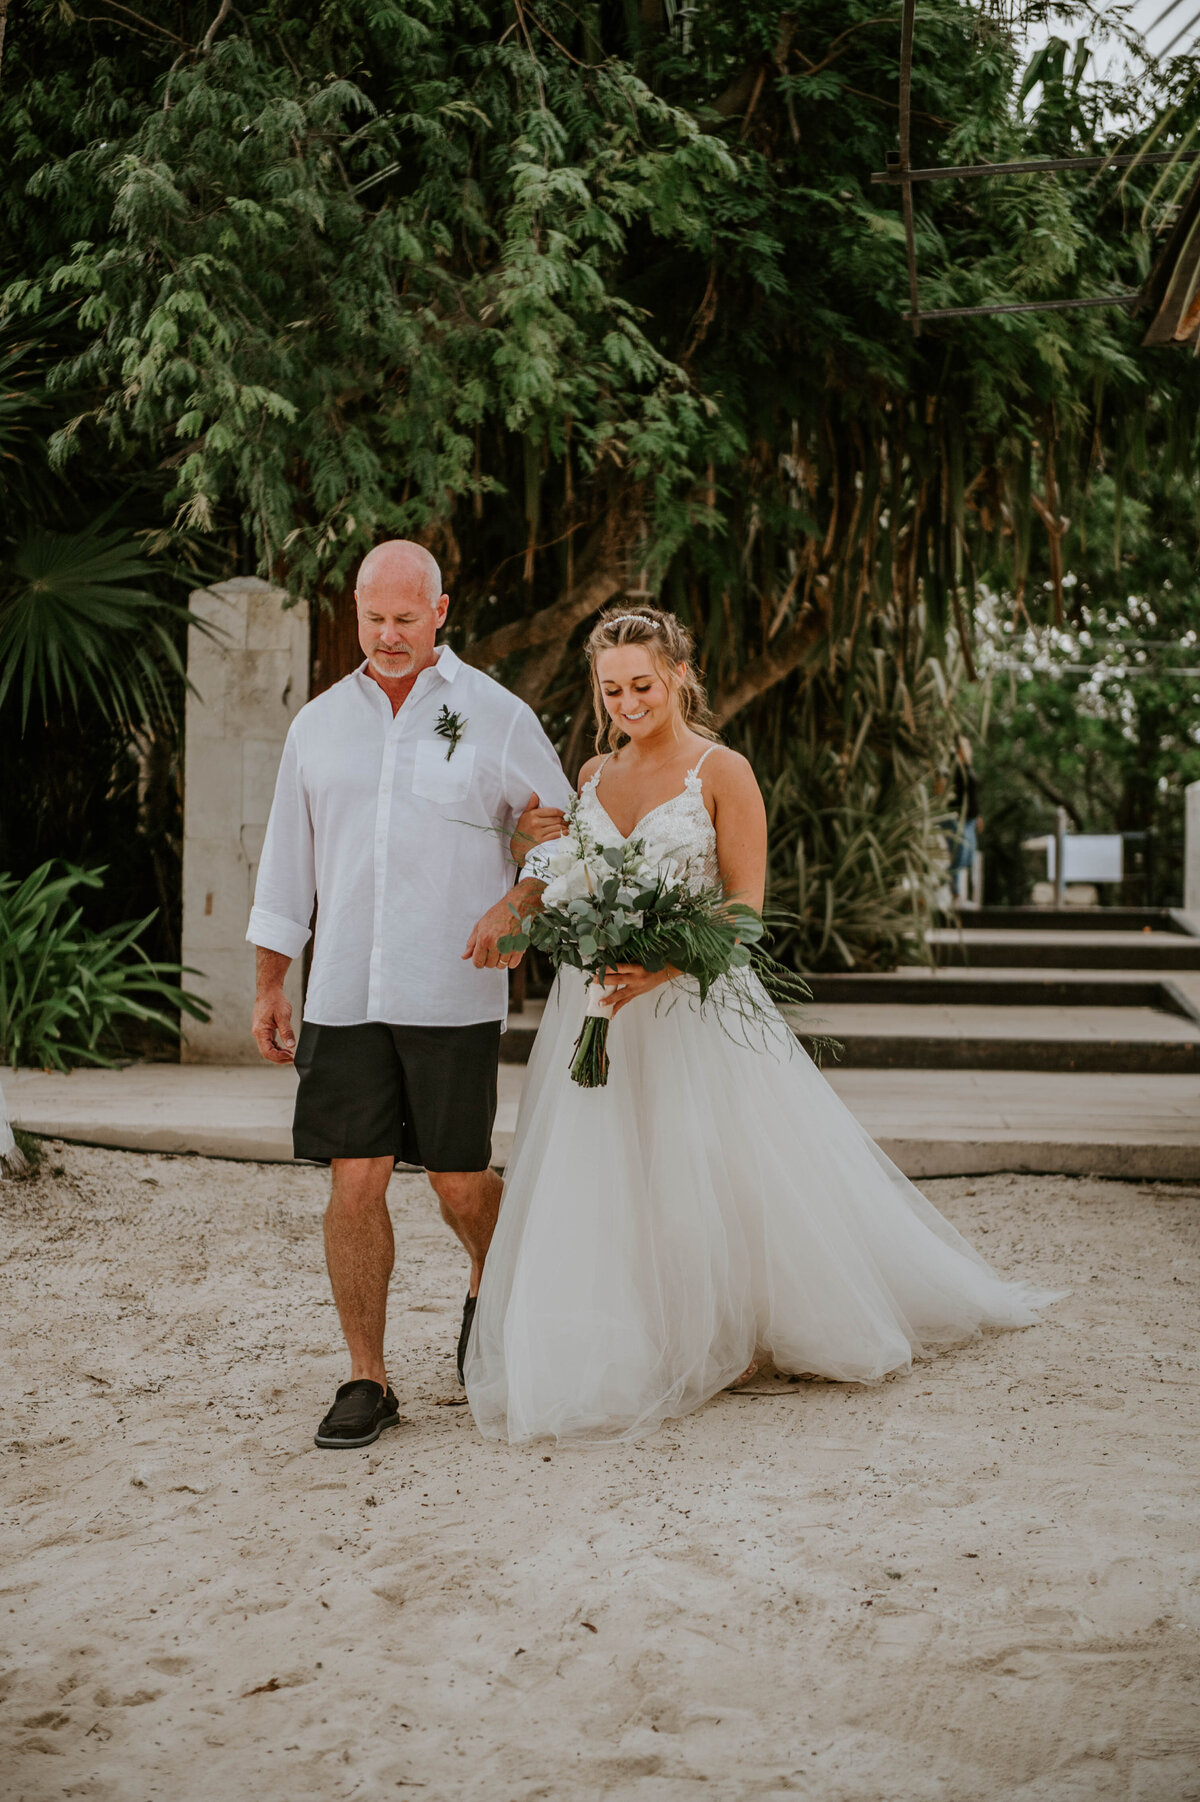 isla-mujeres-wedding-photographer-guthrie-zama-mexico-tulum-cancun-beach-destination-0977